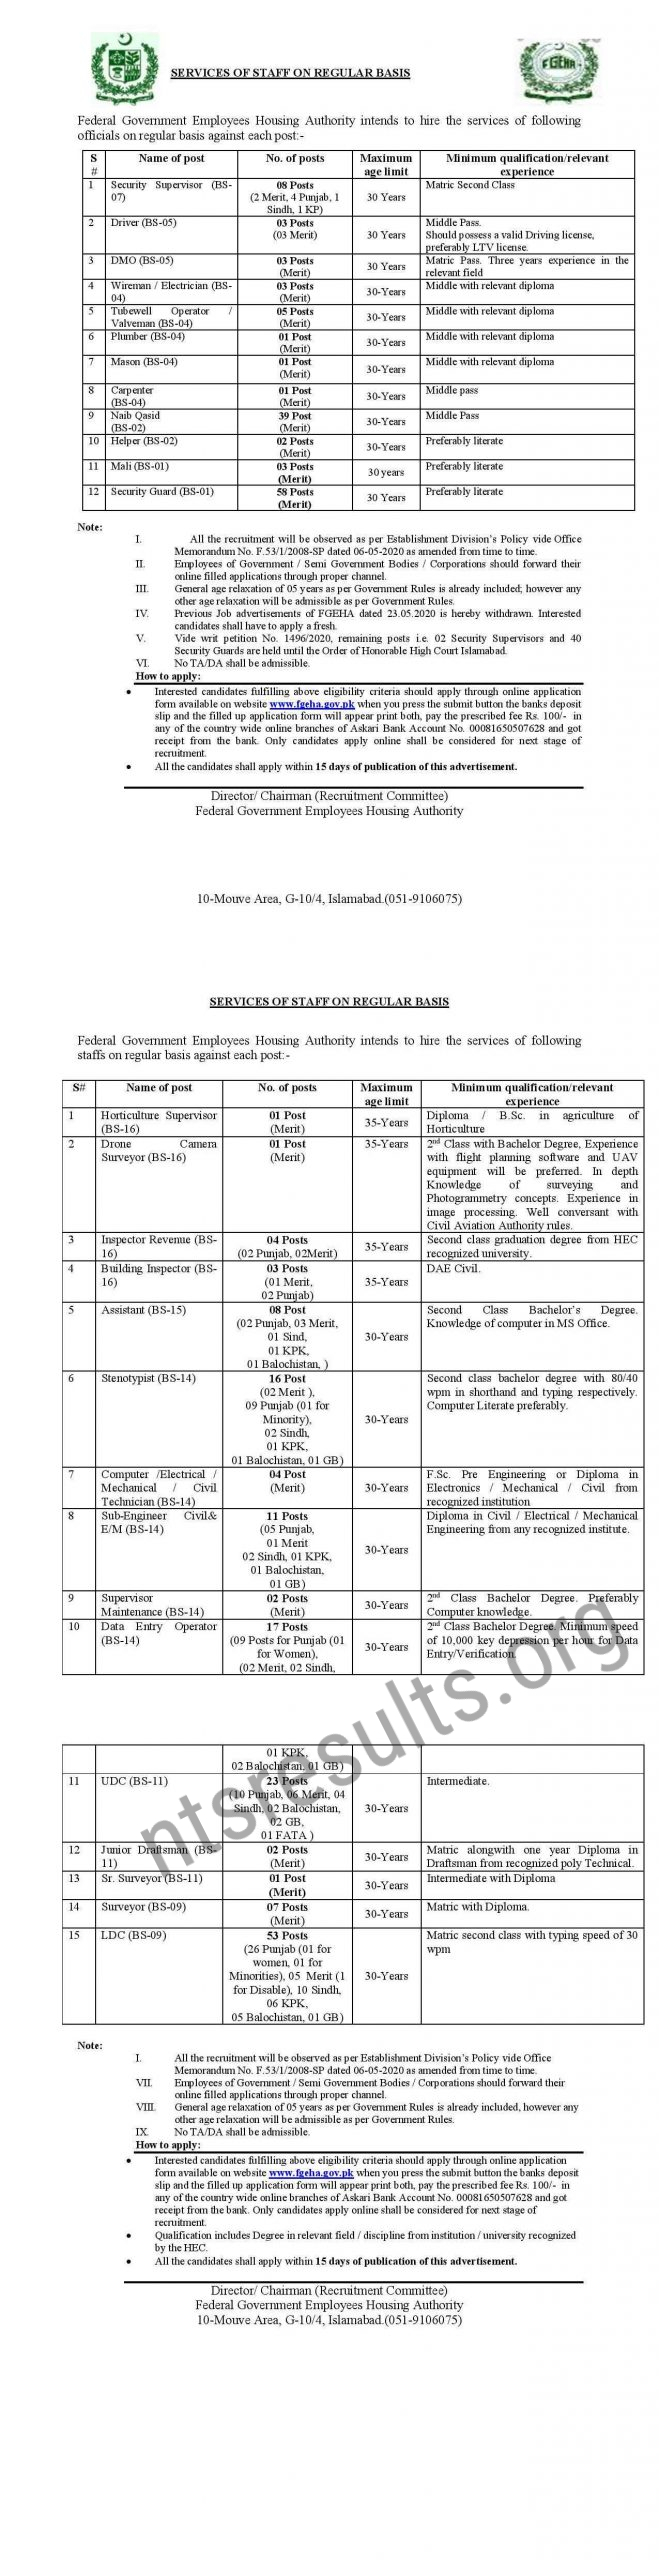 FGEHA Jobs Result Interview Result Selected Candidates List